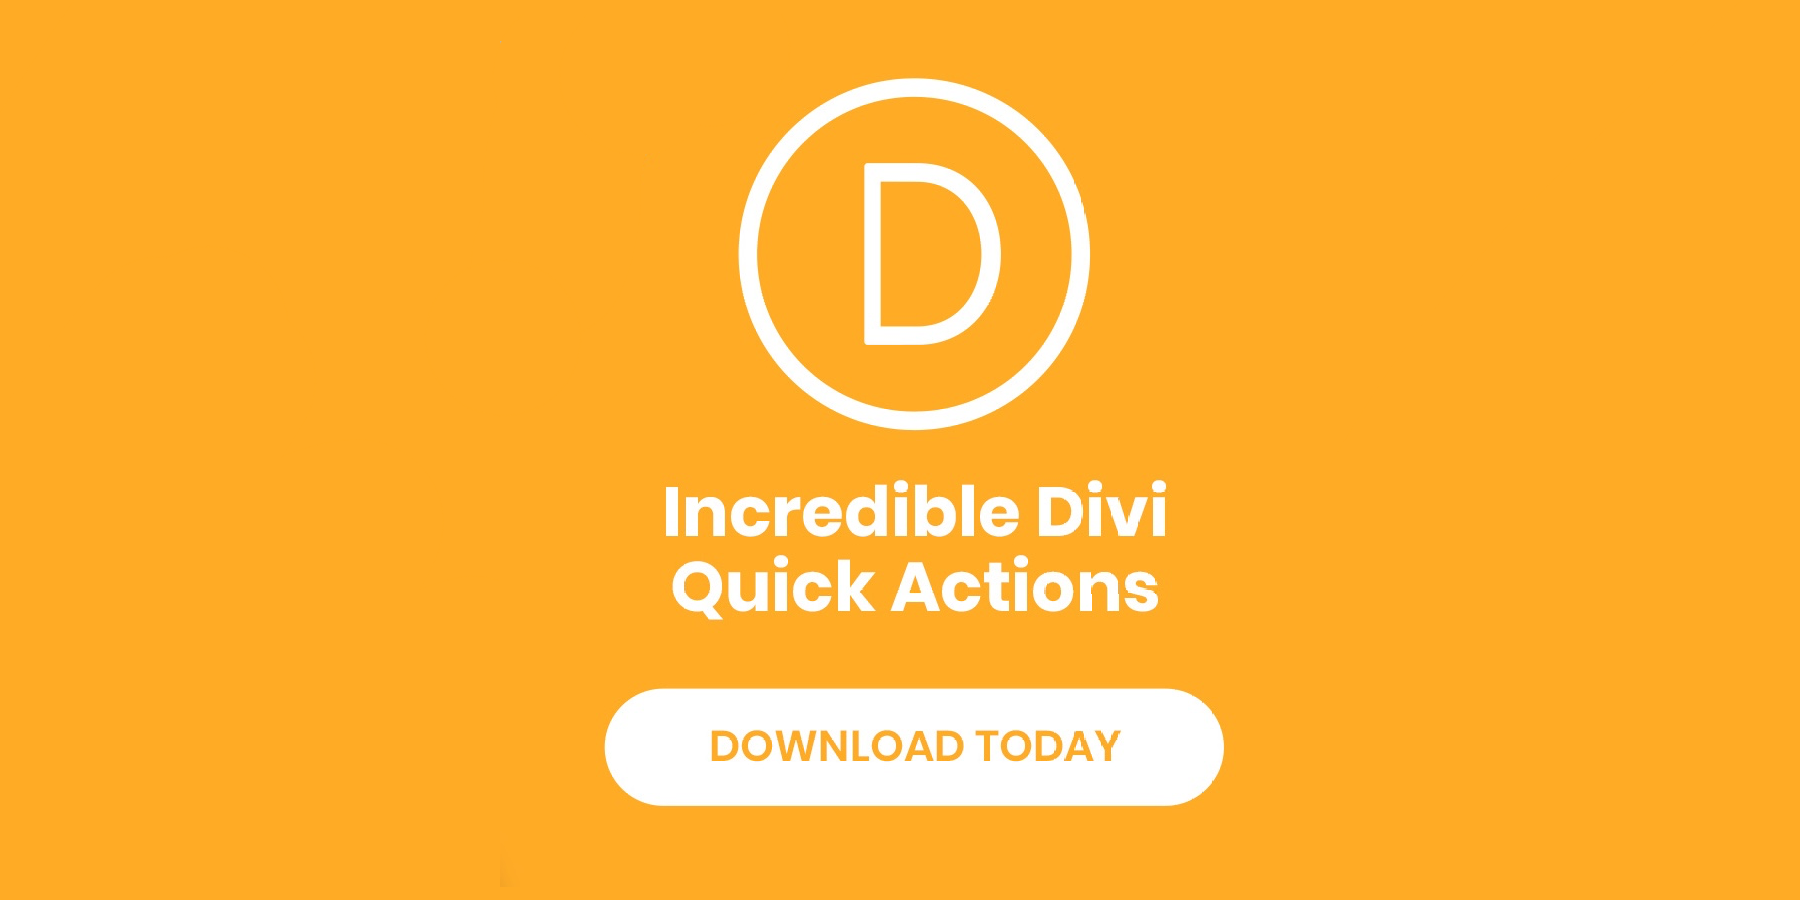 Elegant Themes: New Divi Quick Actions For Faster Web Design